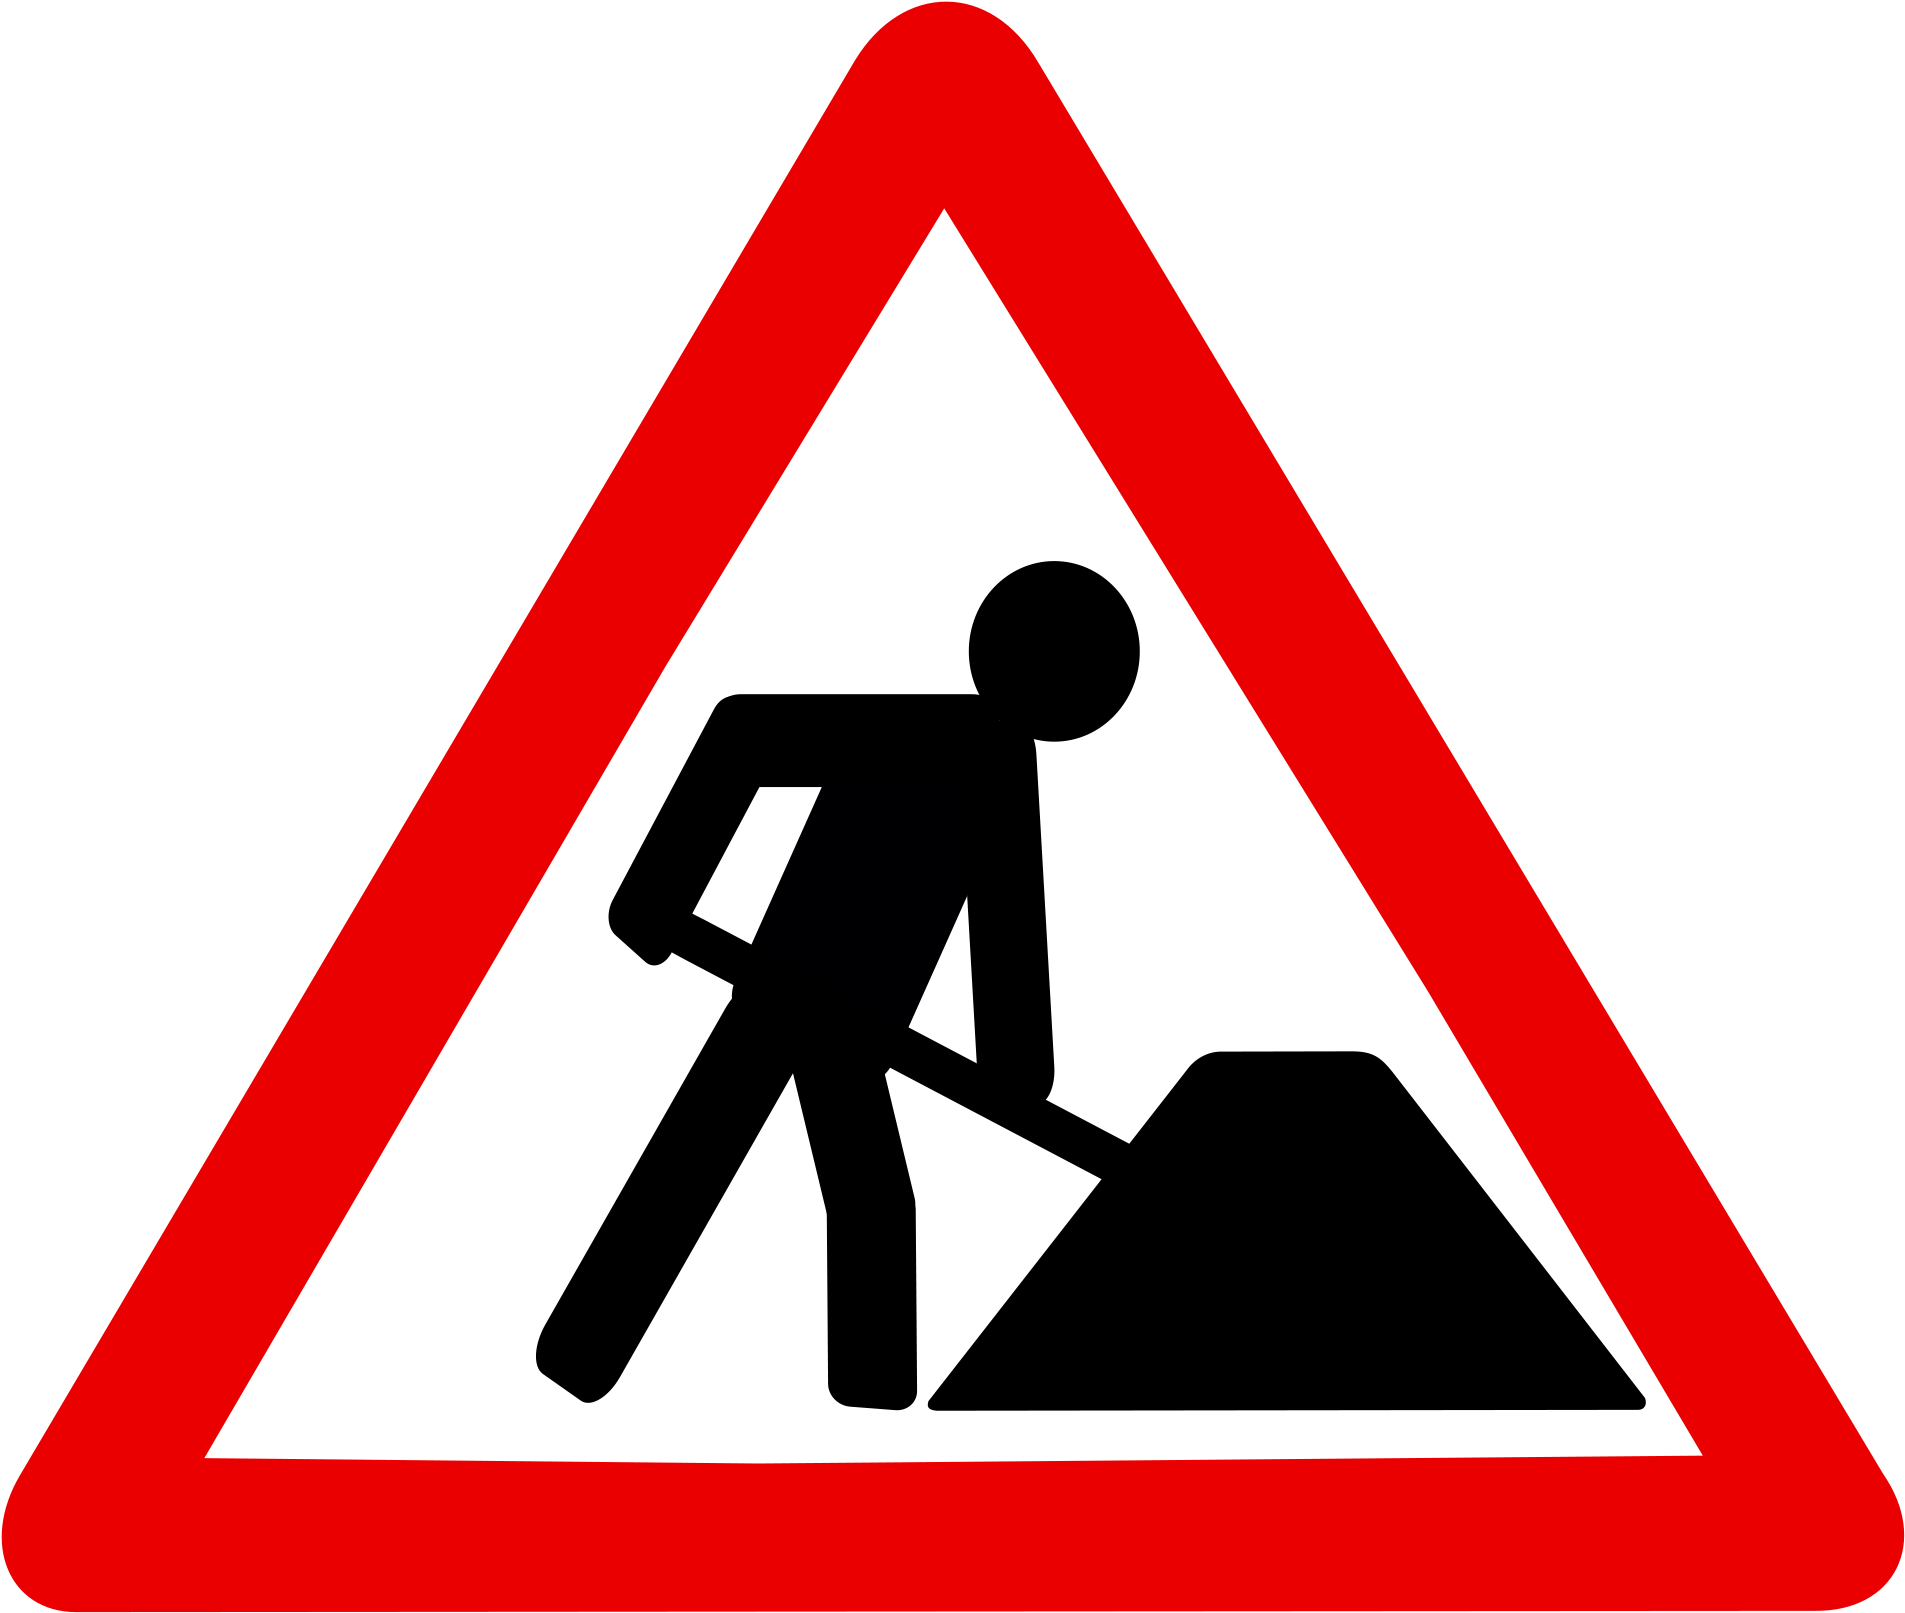 Red Construction Traffic Signs Road Works.